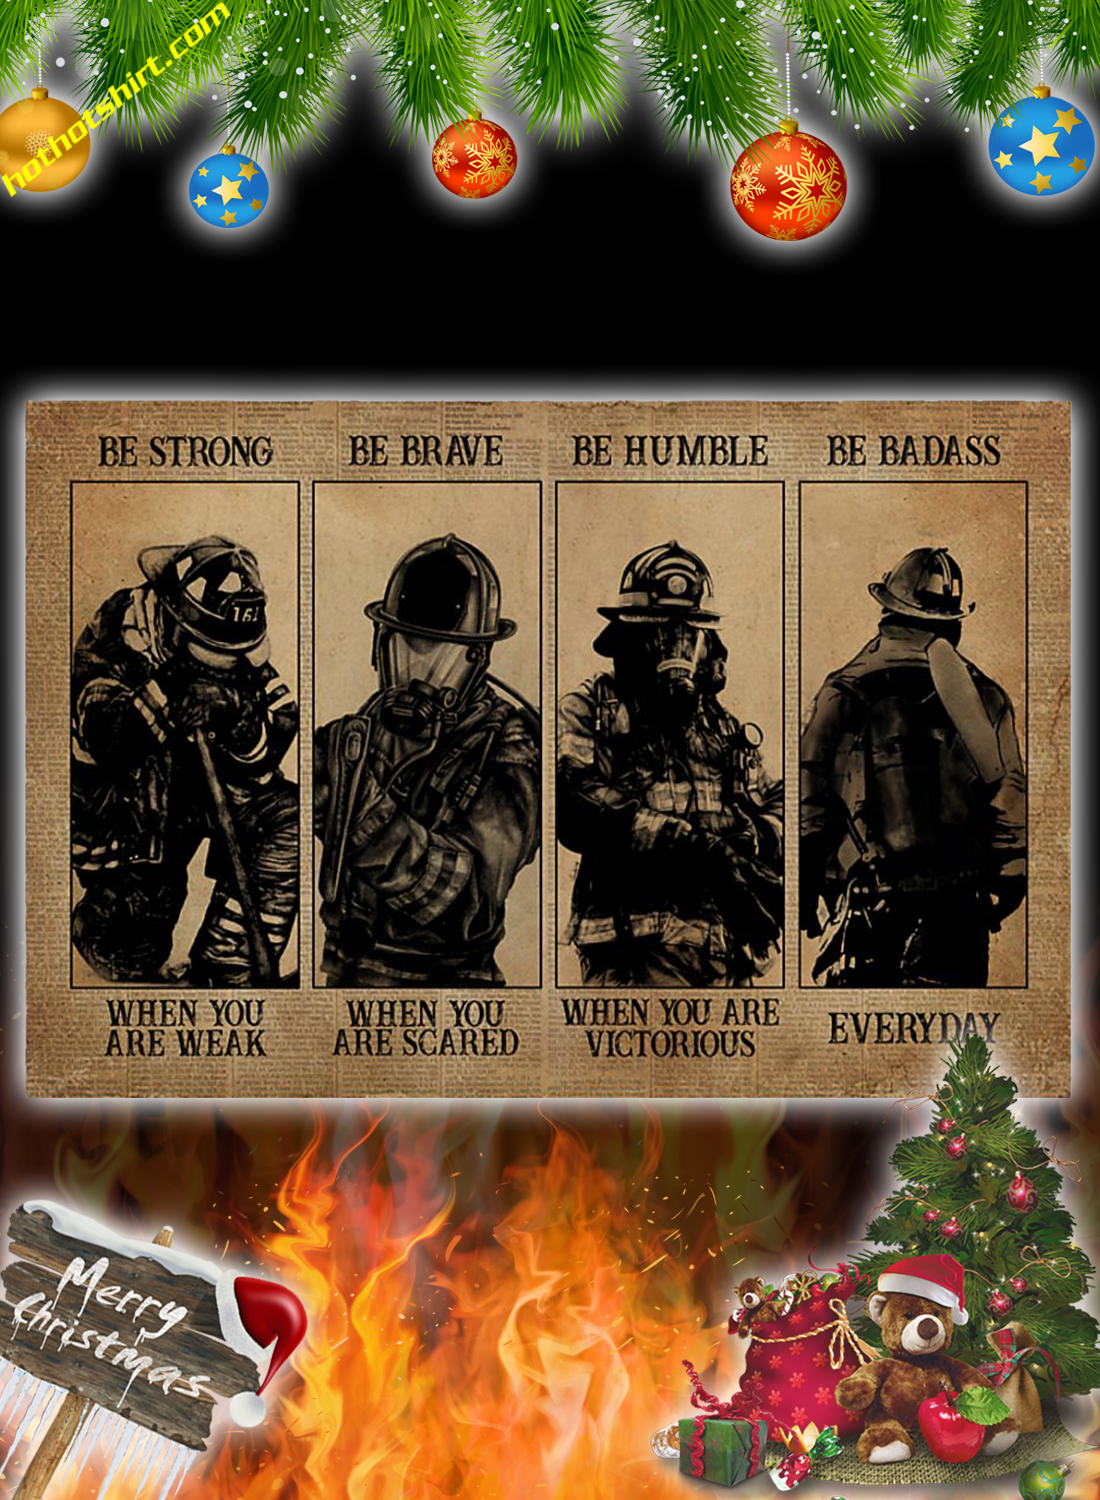 Firefighter be strong be brave be humble be badass poster